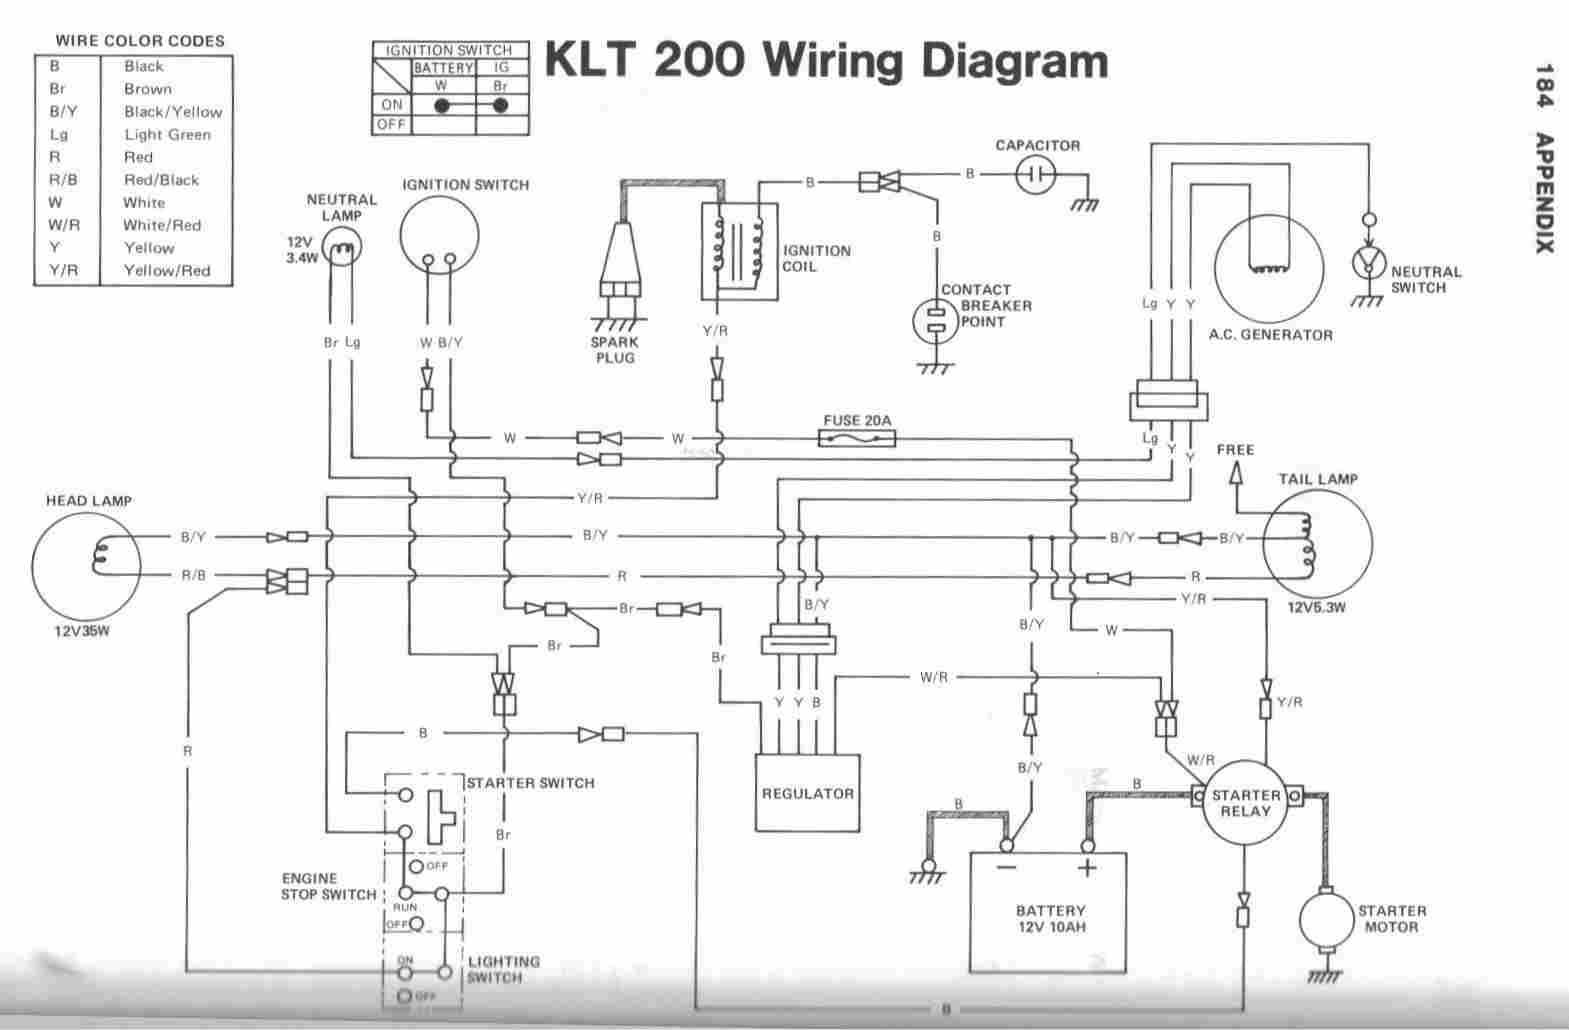 Residential Electrical Wiring Diagrams Pdf Easy Routing Wiring Diagram